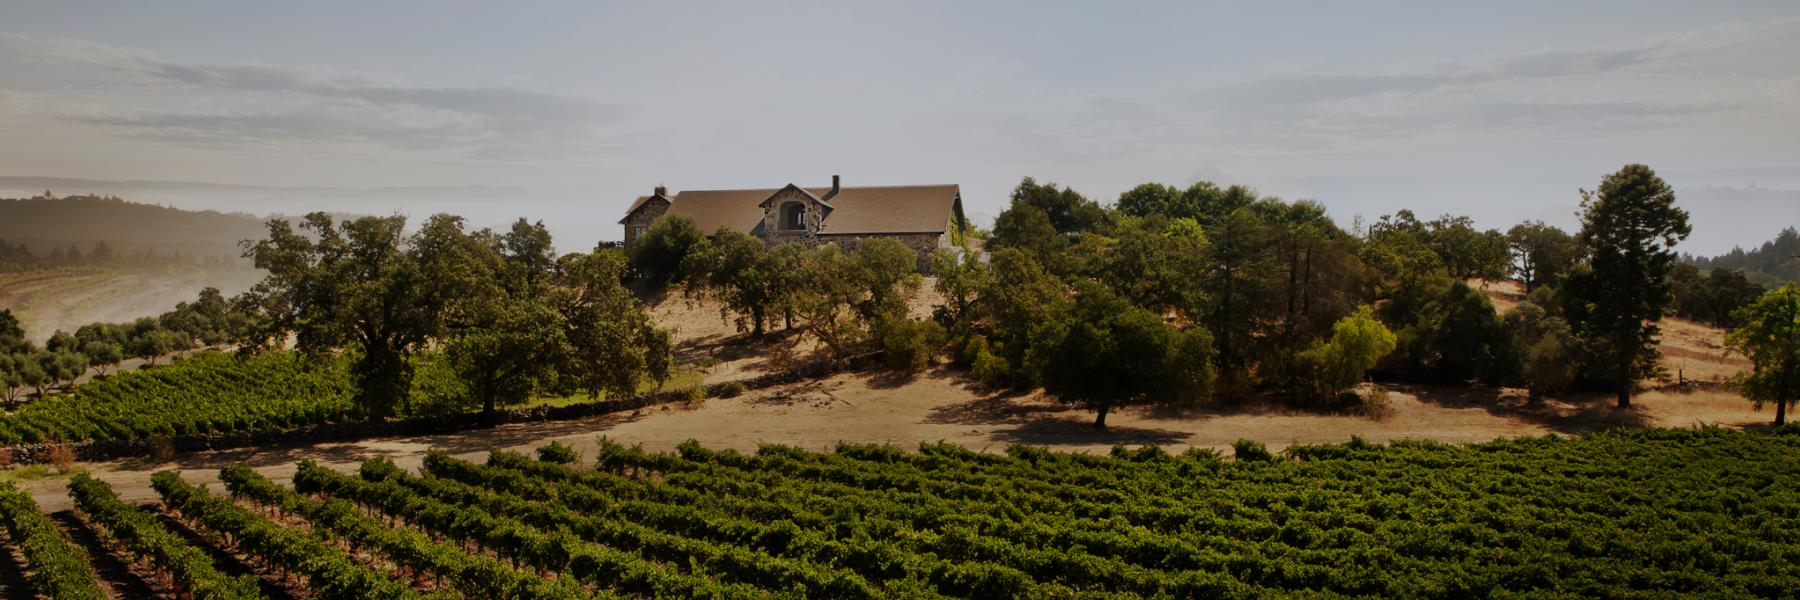 Cardinale estate, Napa Valley, California